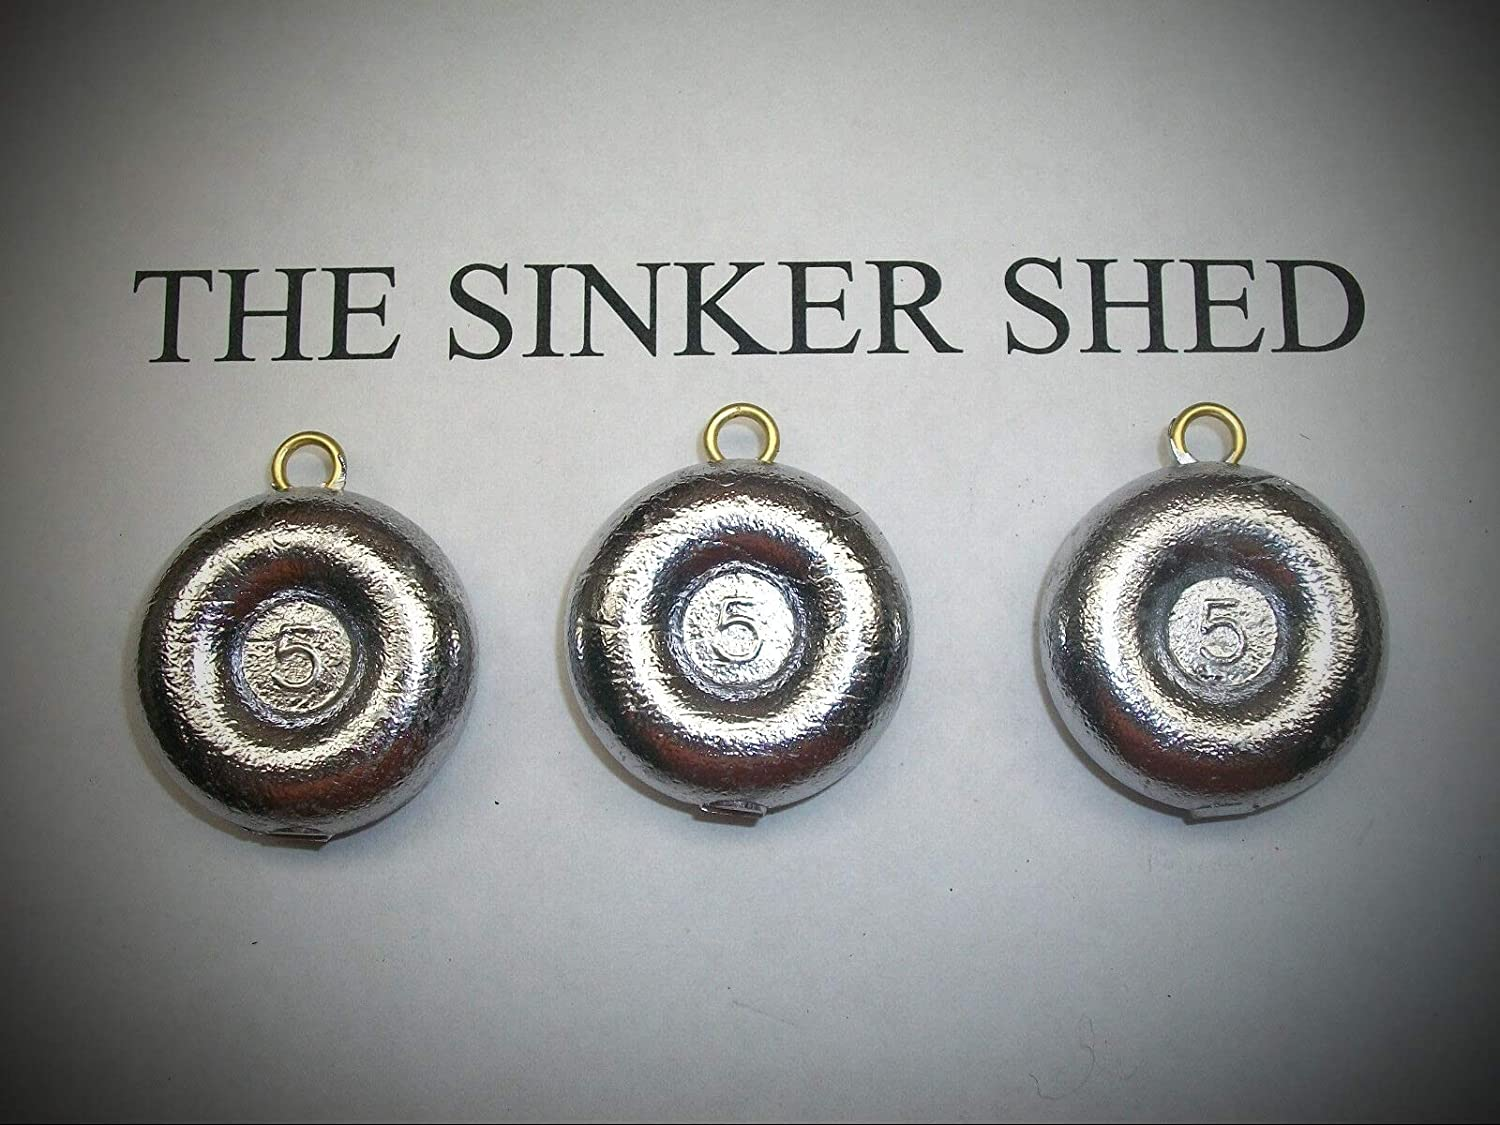 50 Pièces Plat Rond Coin River Sinkers 3//4 oz